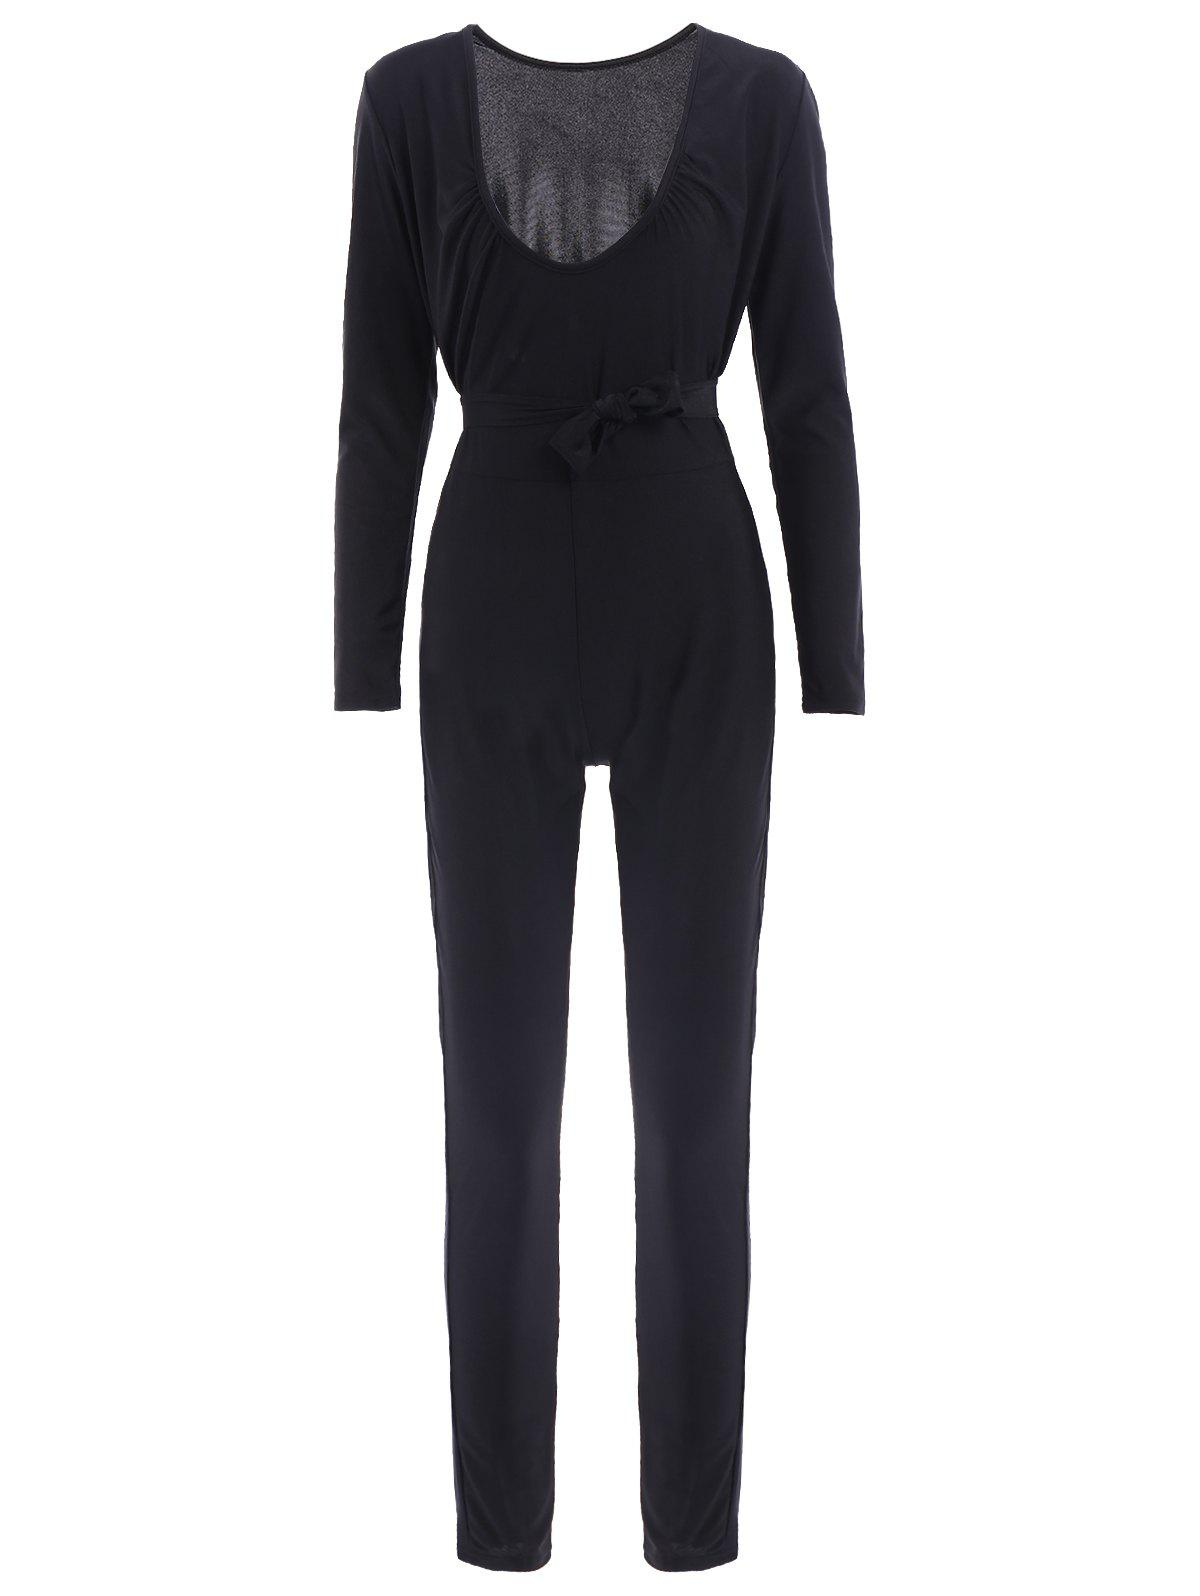 Affordable Sexy Self-Tie Design Long Sleeve Plunging Neck Women's Jumpsuit